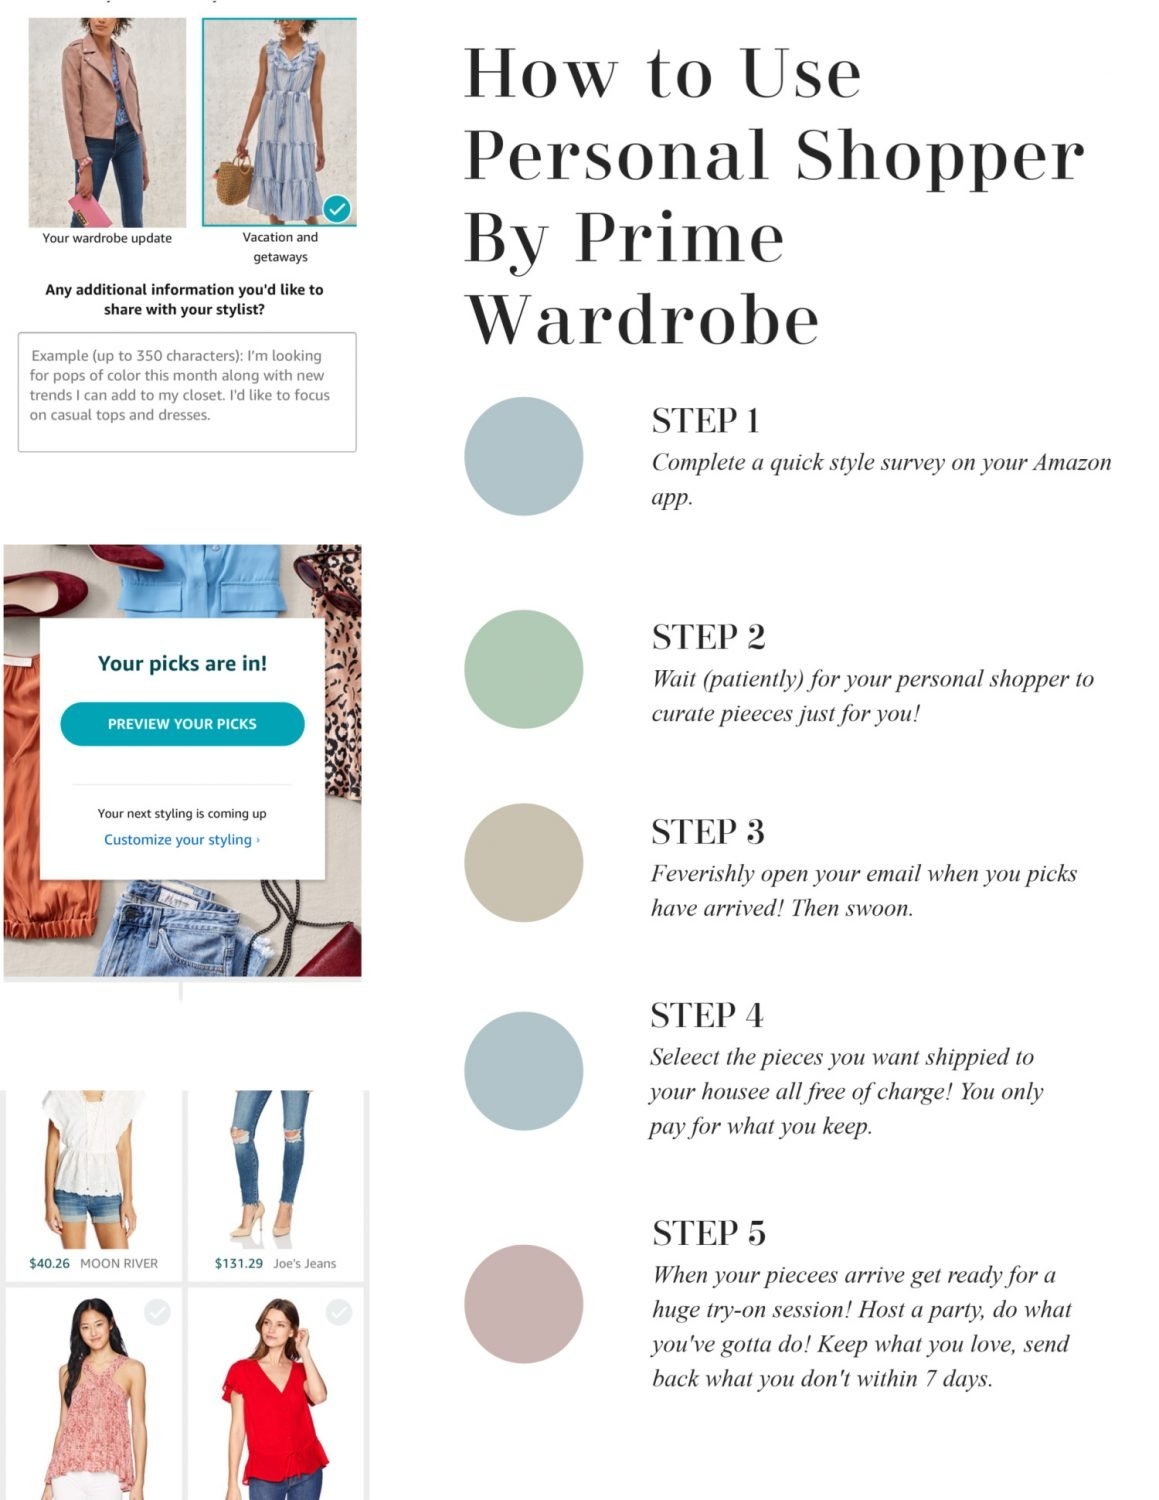 personal shopper by prime wardrobe